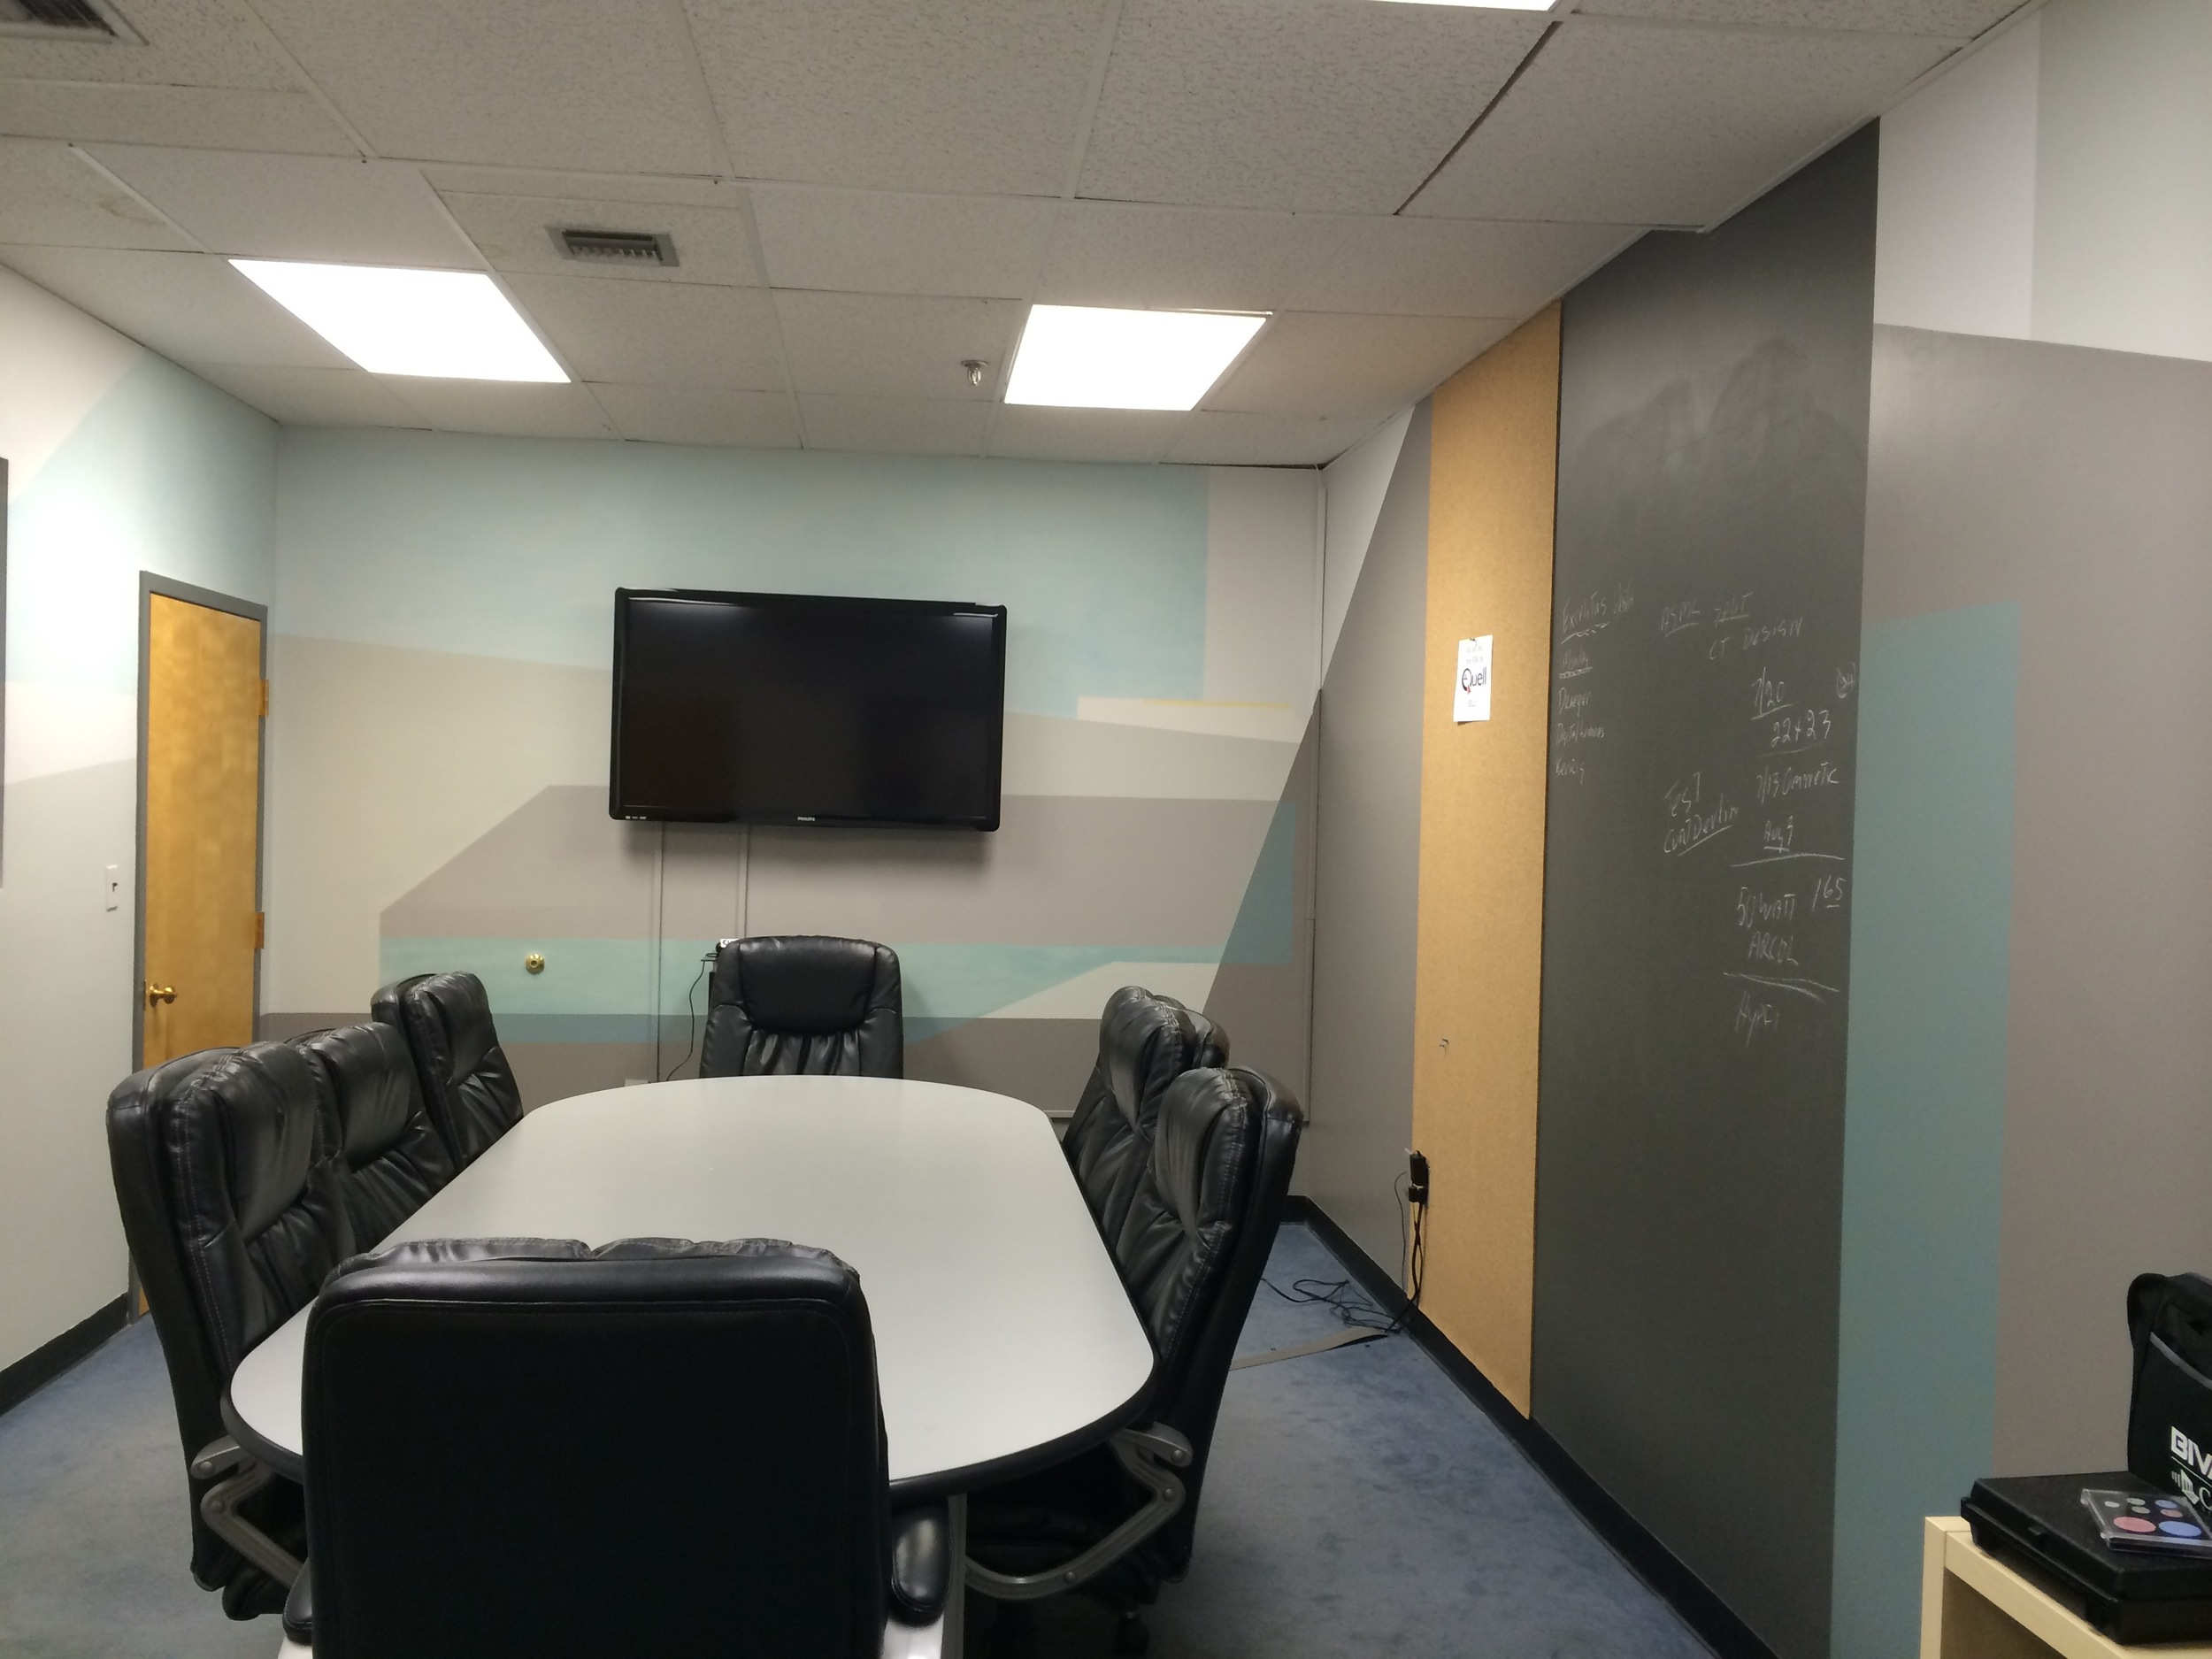 Conference room - detail